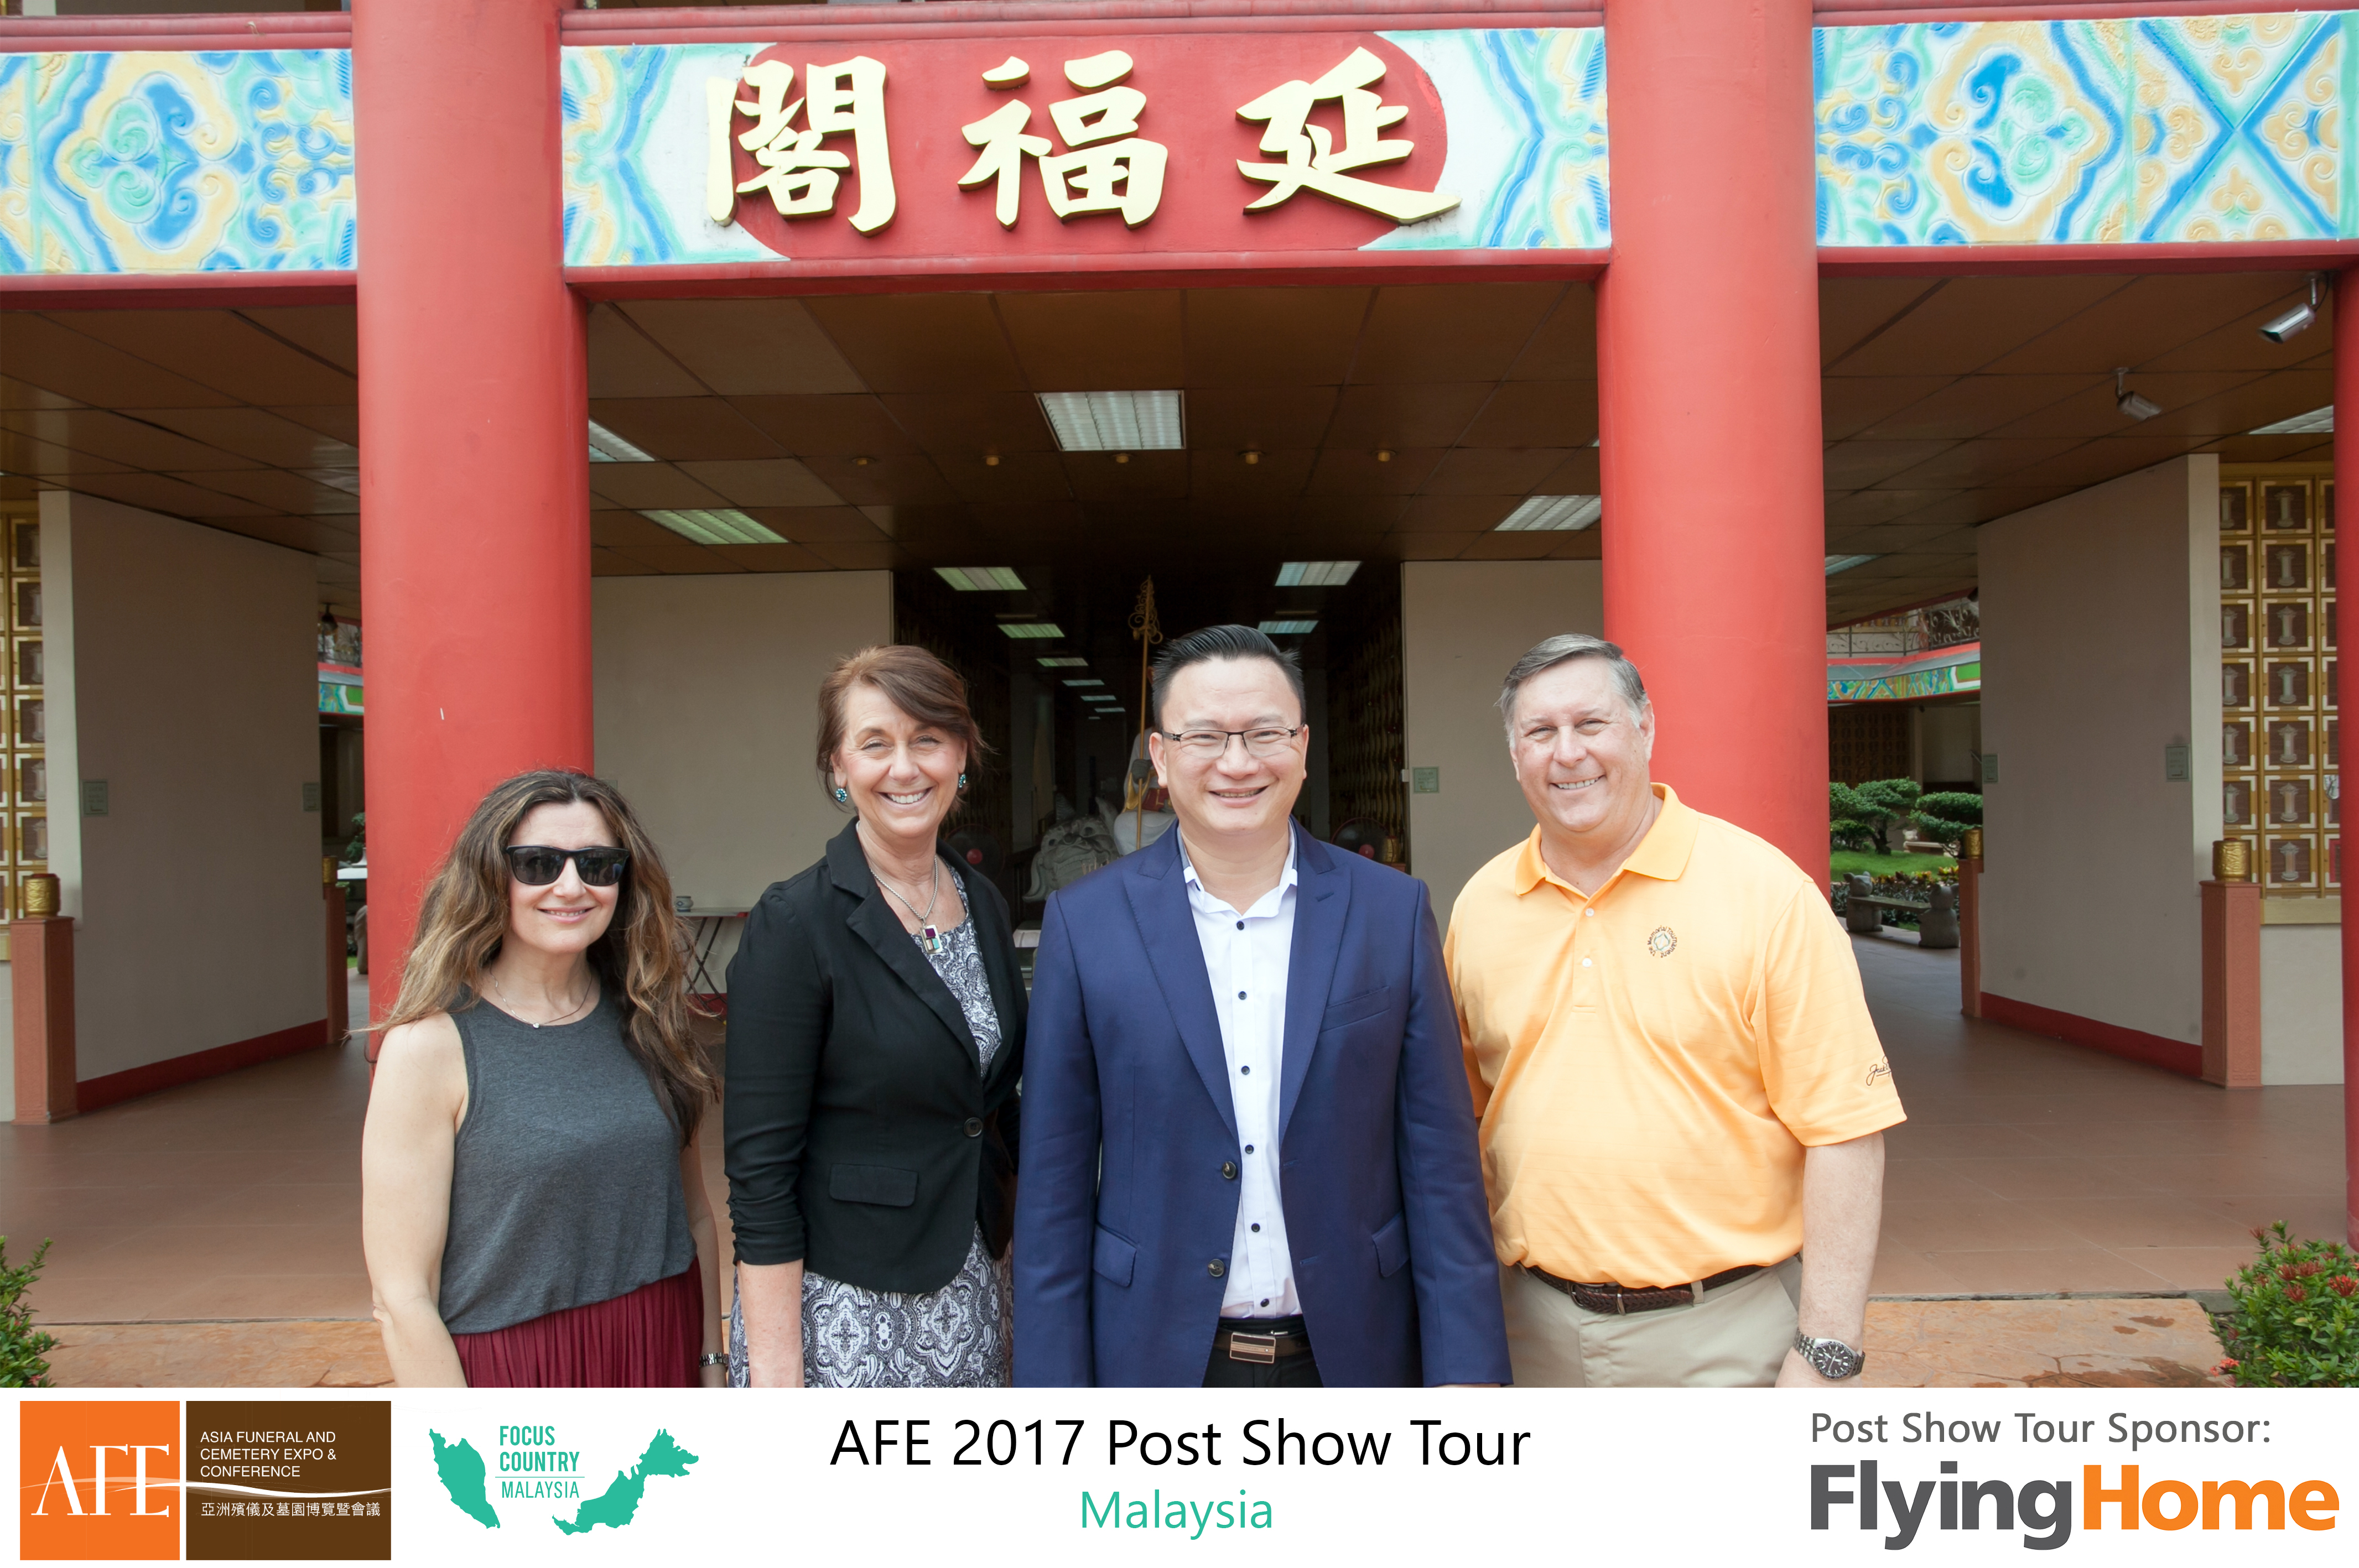 AFE Post Show Tour 2017 Day 4 - 21